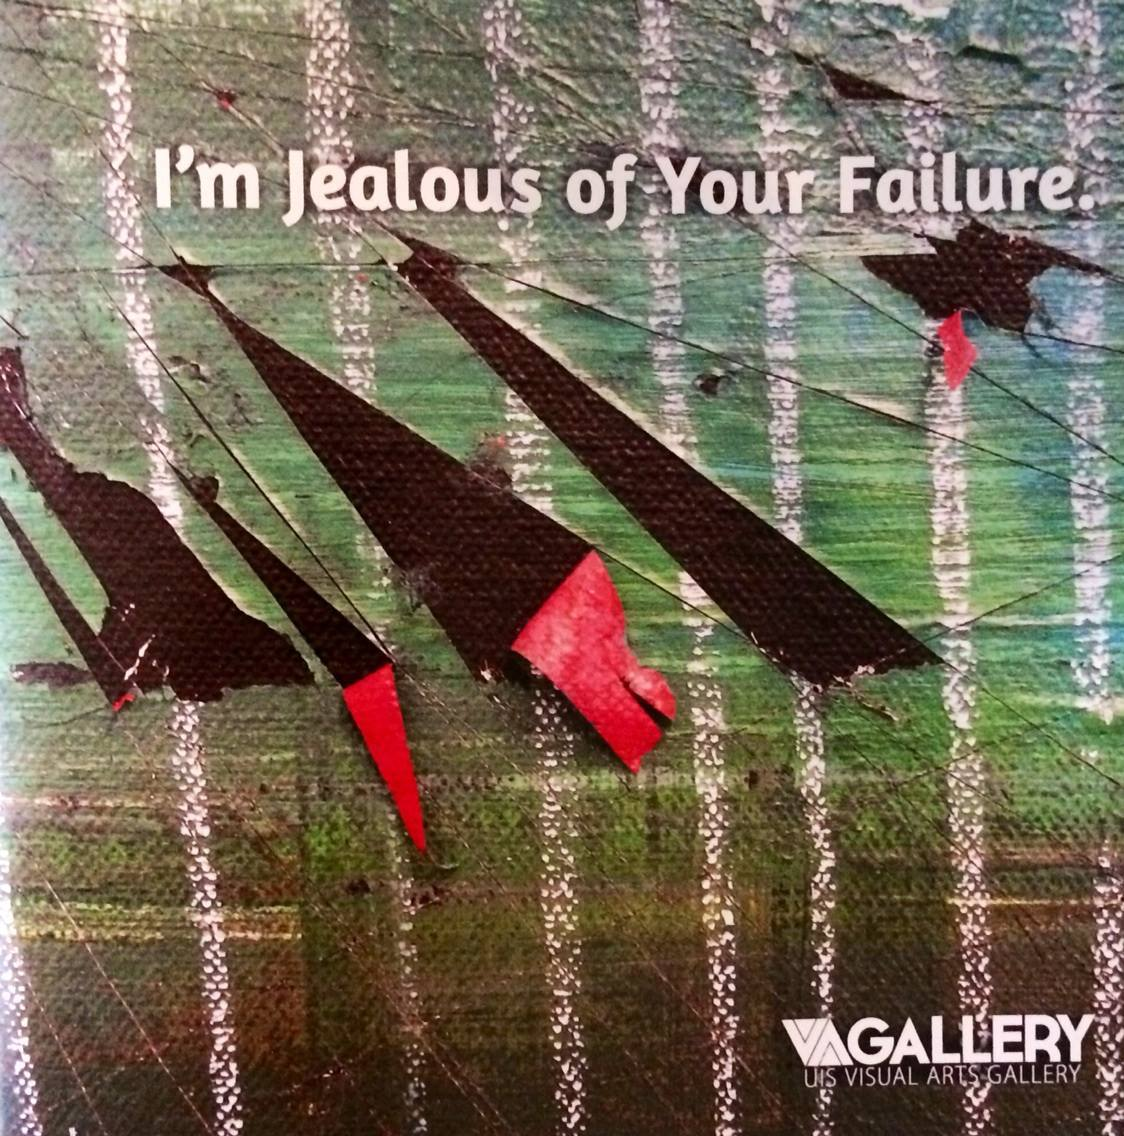 i'm jealous of your failure